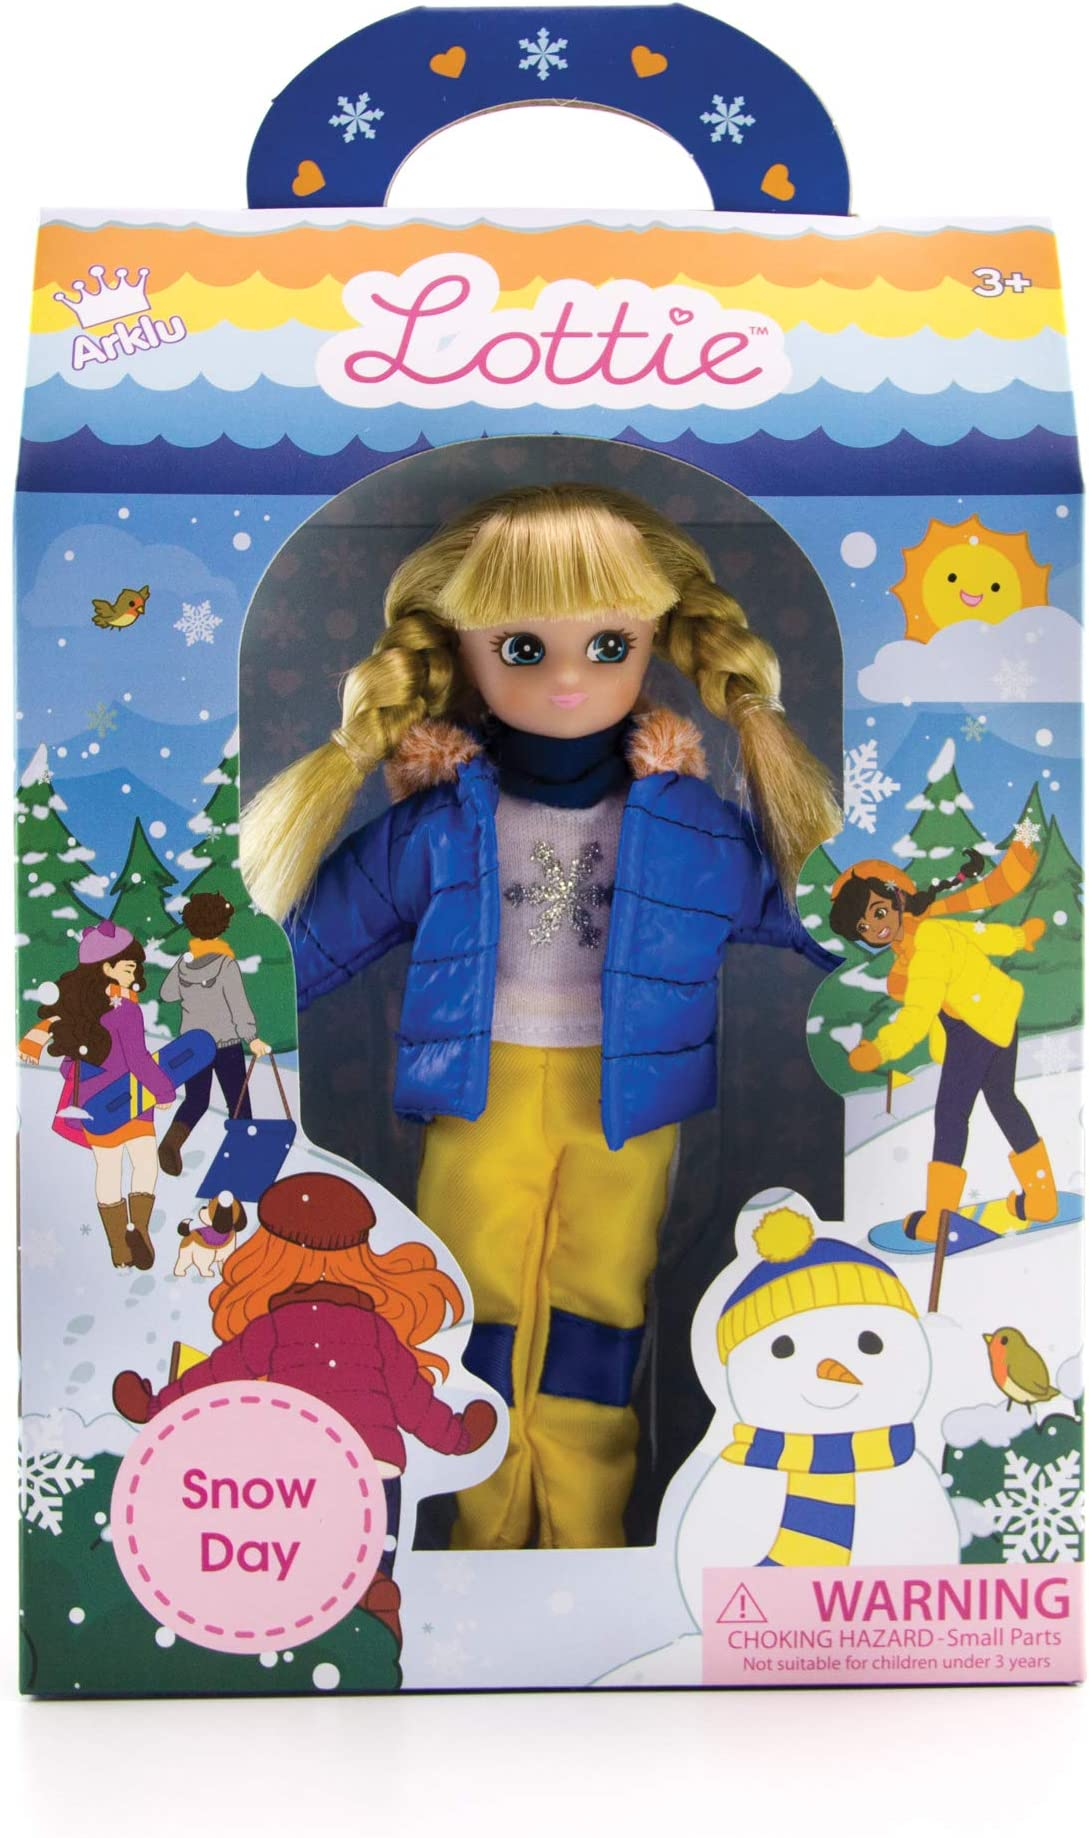 Snow Doll | Lottie Dolls Snow Day | Dolls for Girls and Boys | Snow Toys | Dolls for 5 6 7 Year Old Girls and Boys